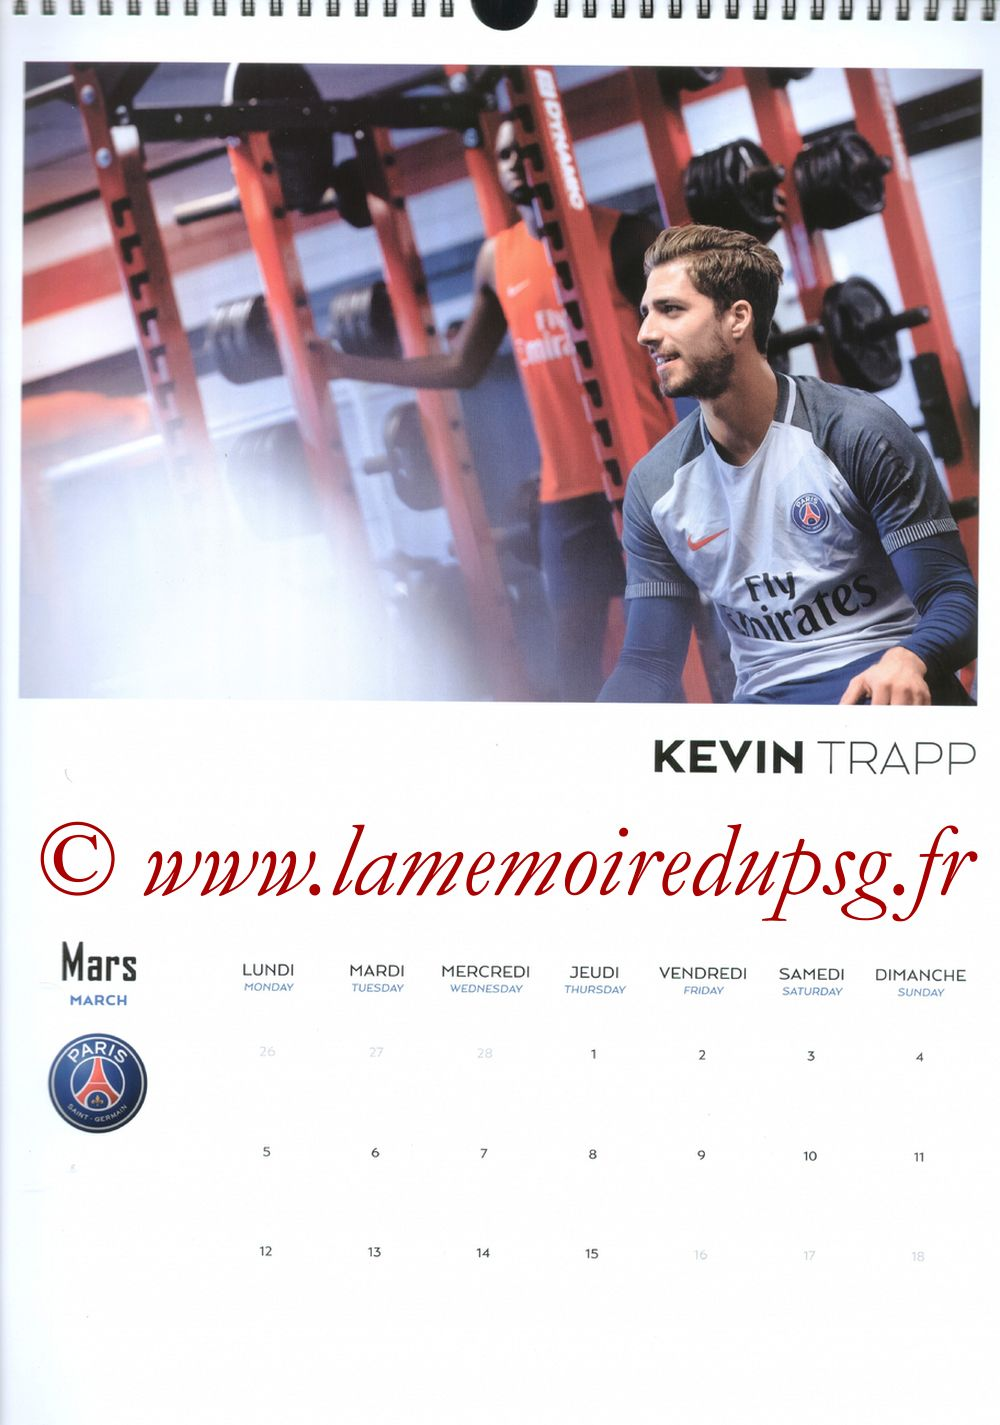 Calendrier PSG 2018 - Page 05 - Kevin TRAPP